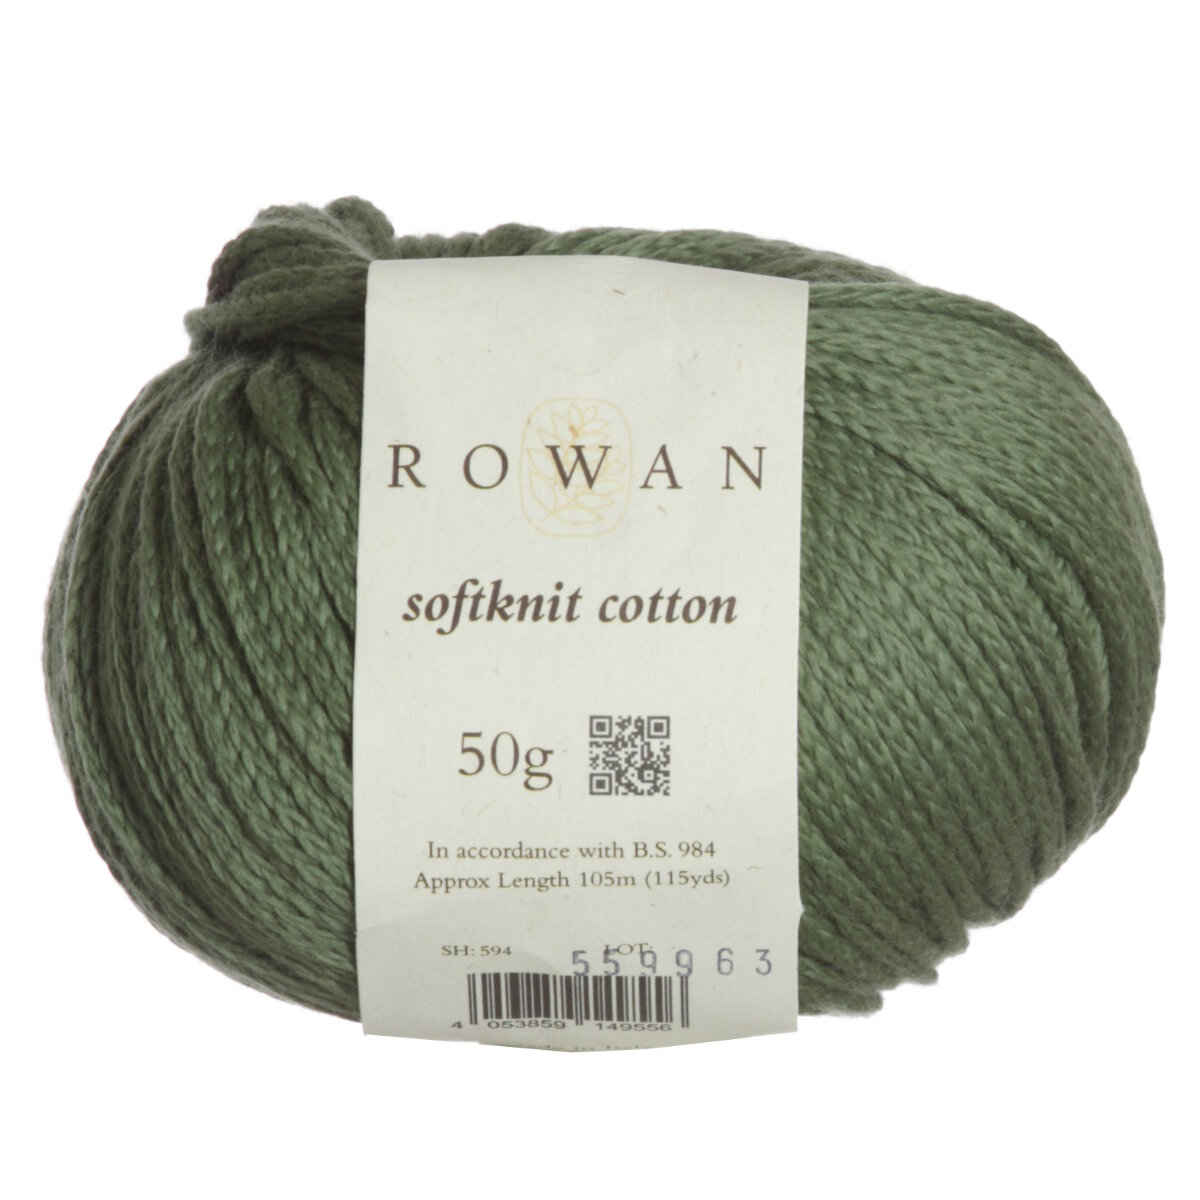 Rowan Softknit Cotton Yarn - 594 Forest Reviews at Jimmy Beans Wool